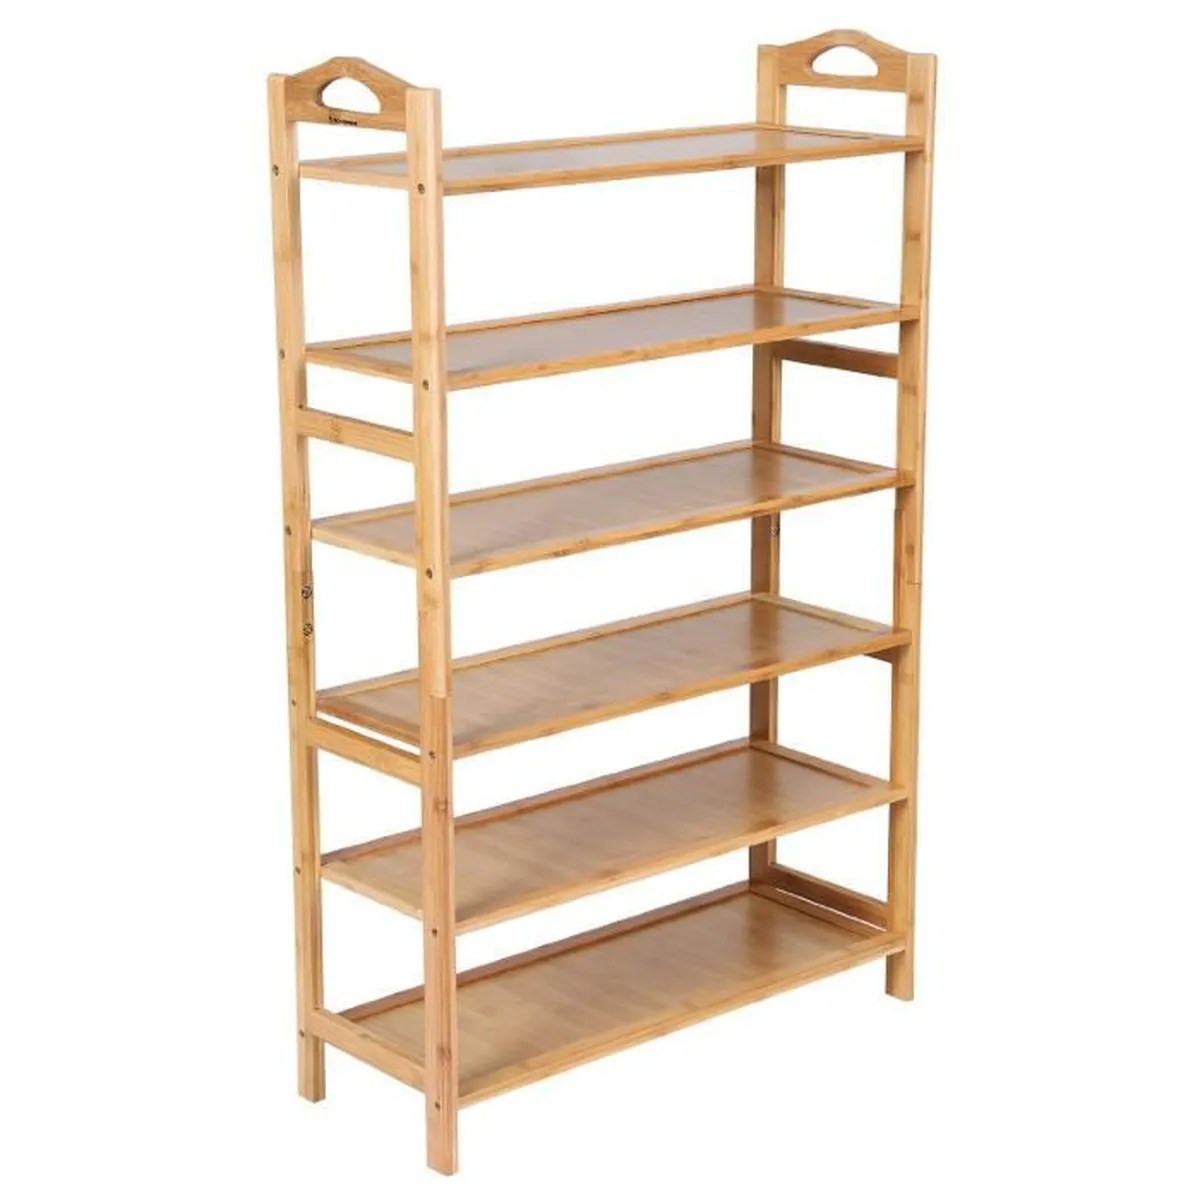 Etagere Chaussure Ikea Etagere A Chaussures Maison Design Wiblia